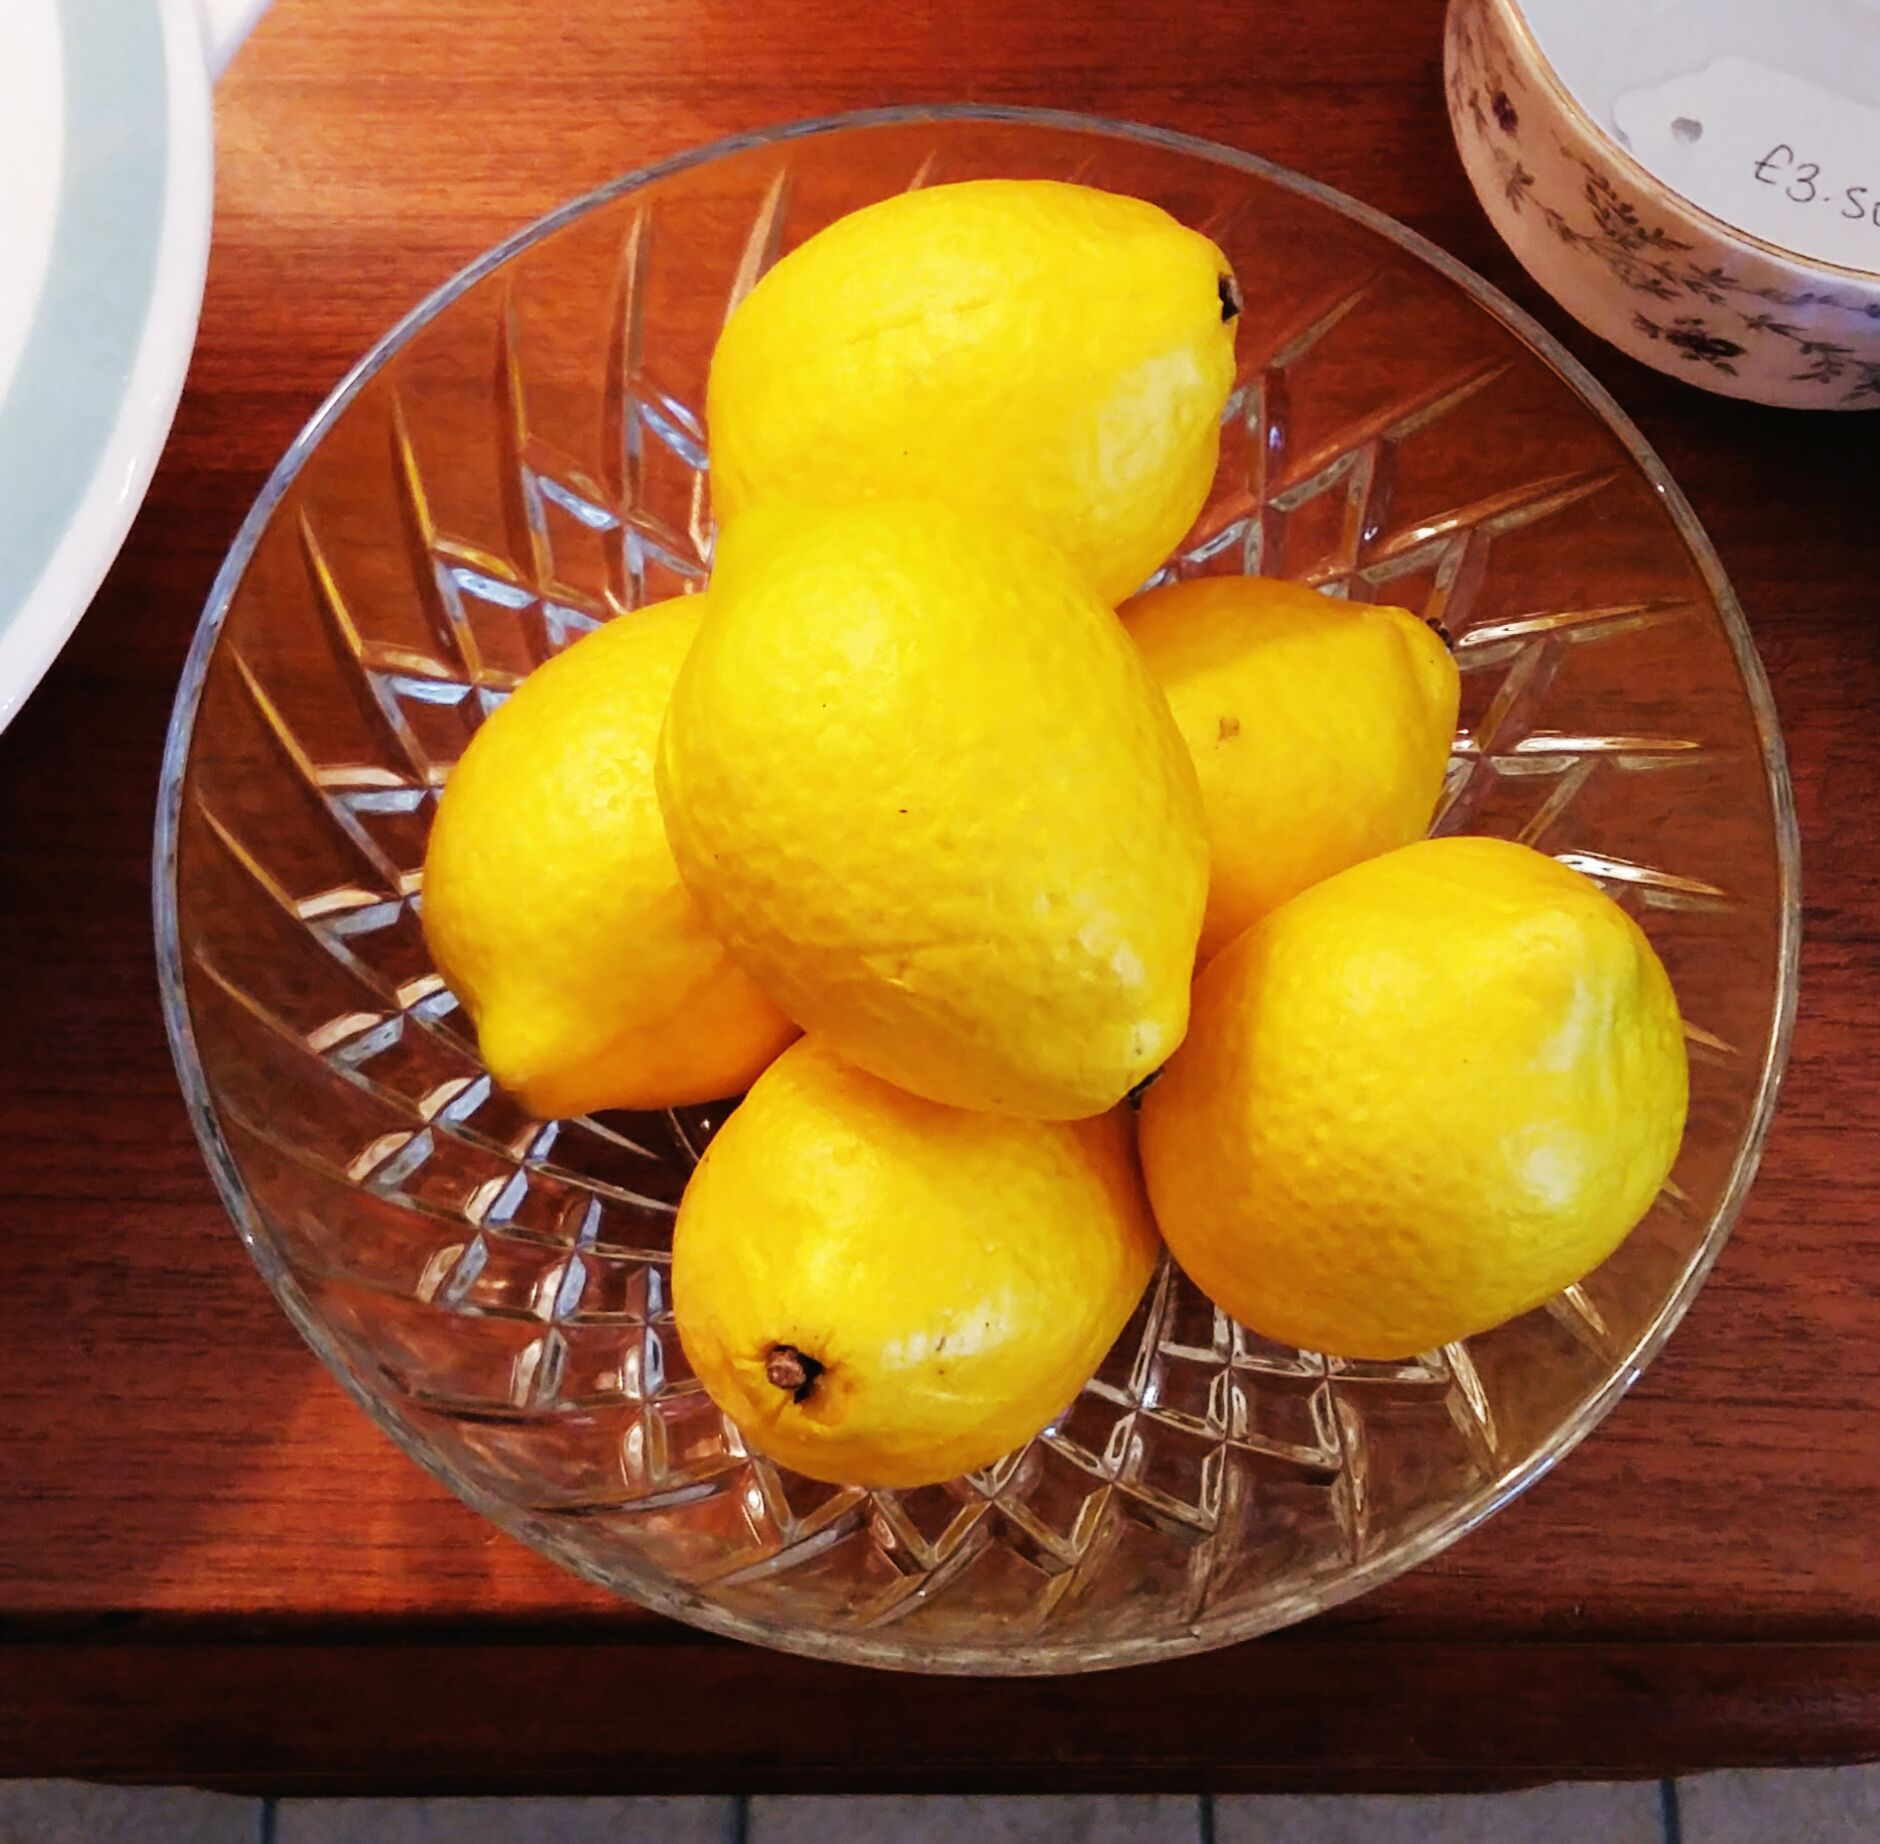 Can't believe there not lemons!